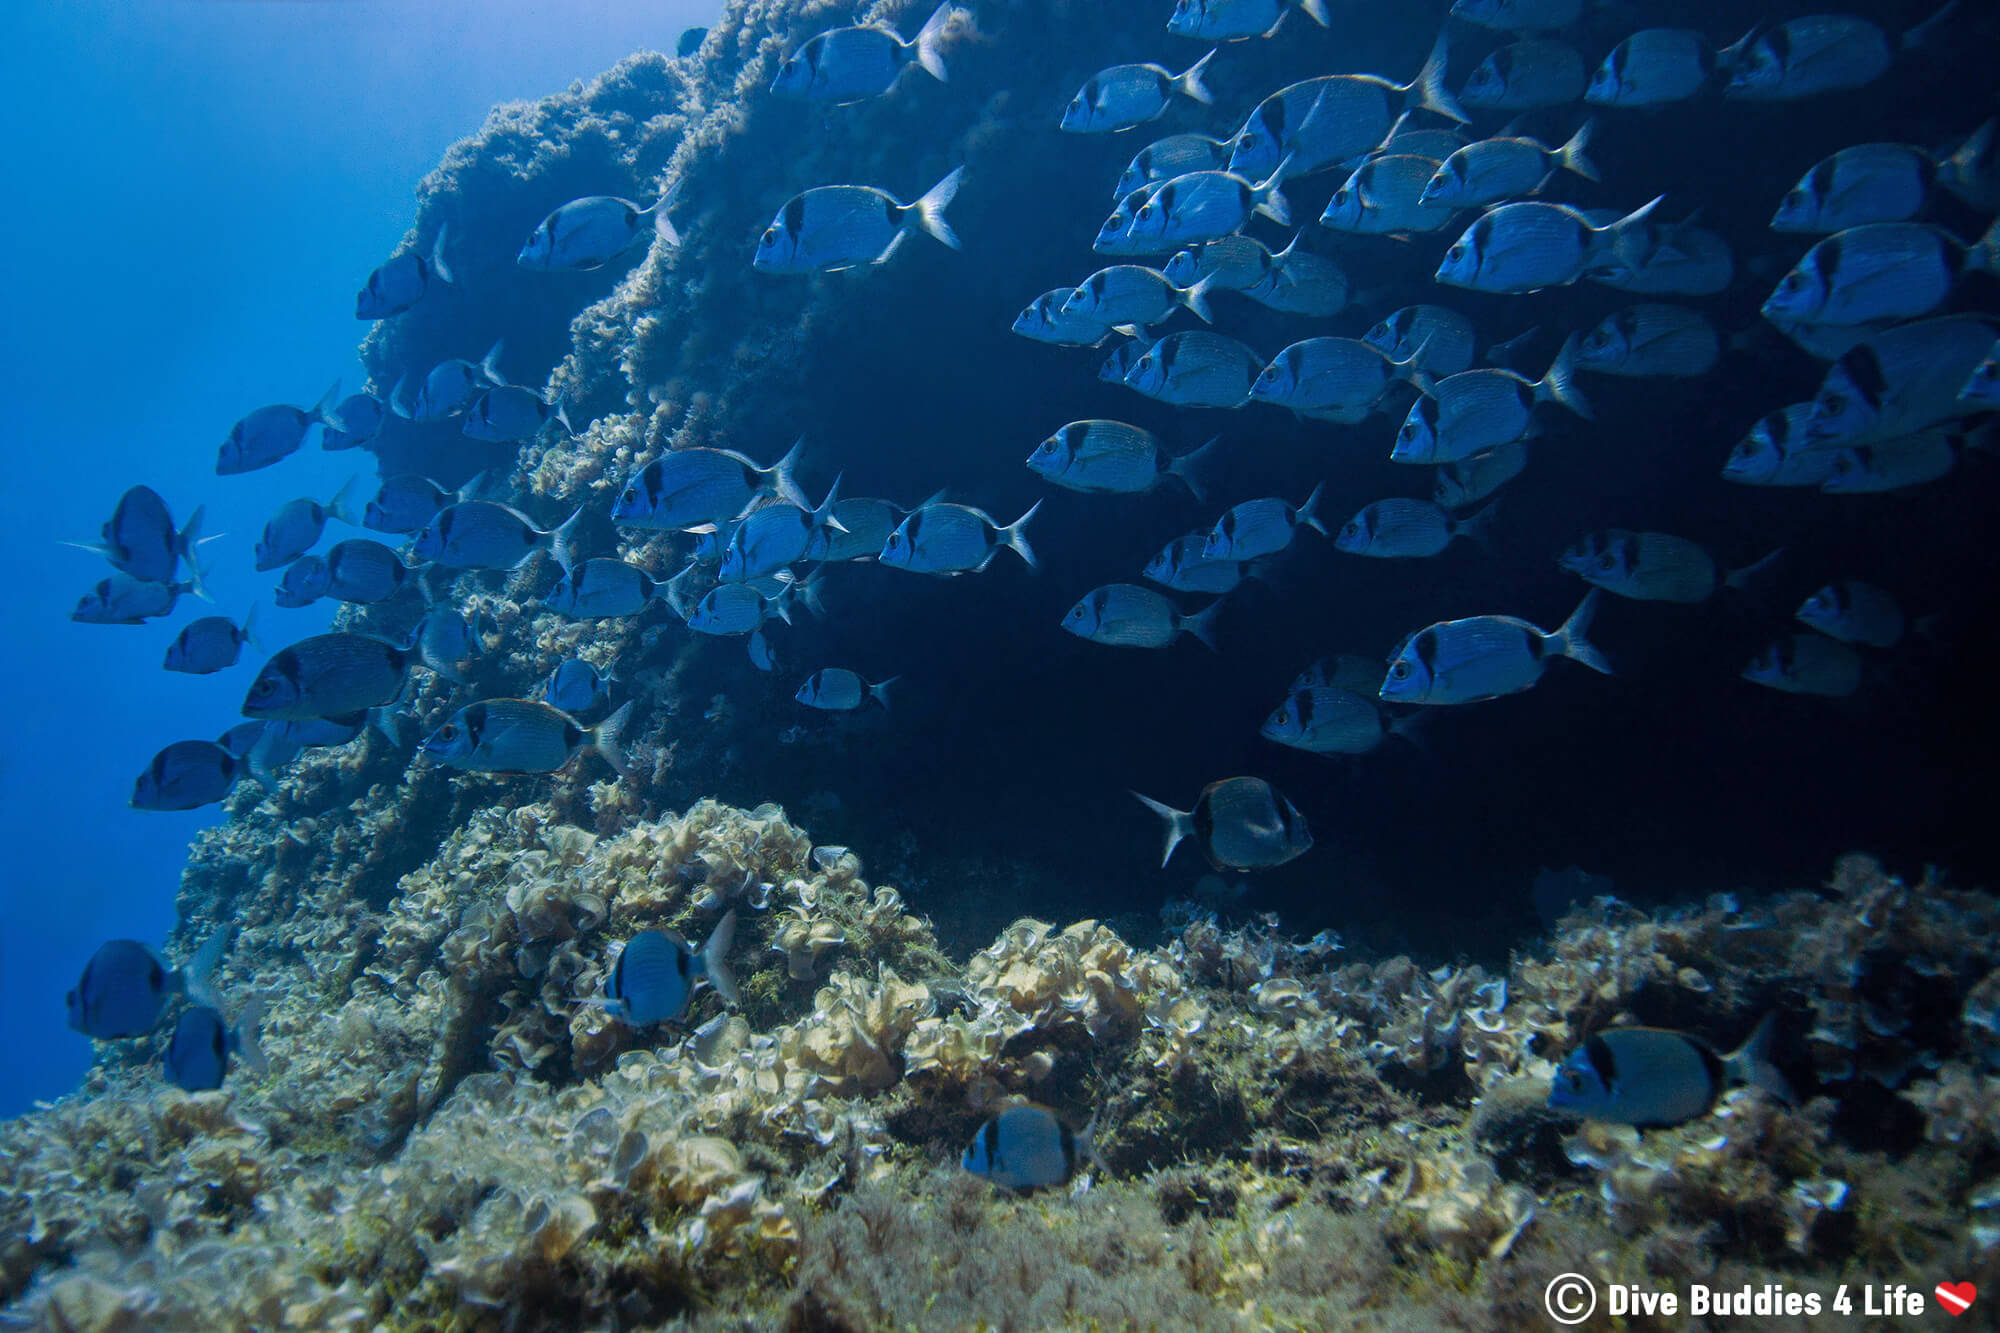 A School Of Sea Bream Fish Seen Scuba Diving Off The Amalfi Coast In Sorrento, Italy